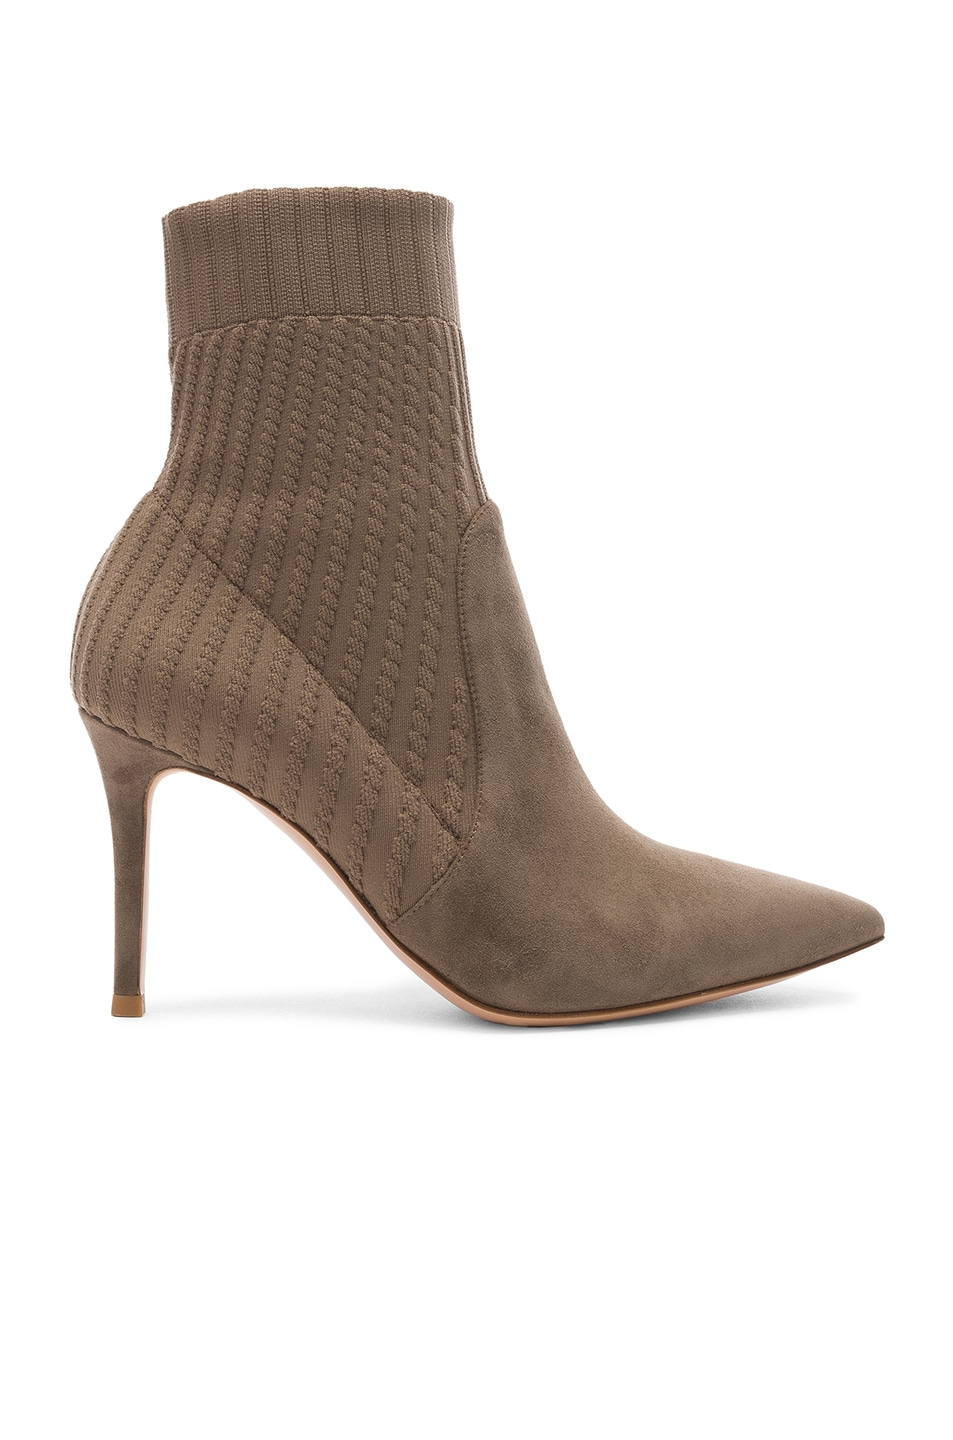 Image 1 of Gianvito Rossi Suede & Knit Katie Ankle Boots in Mud & Bisque